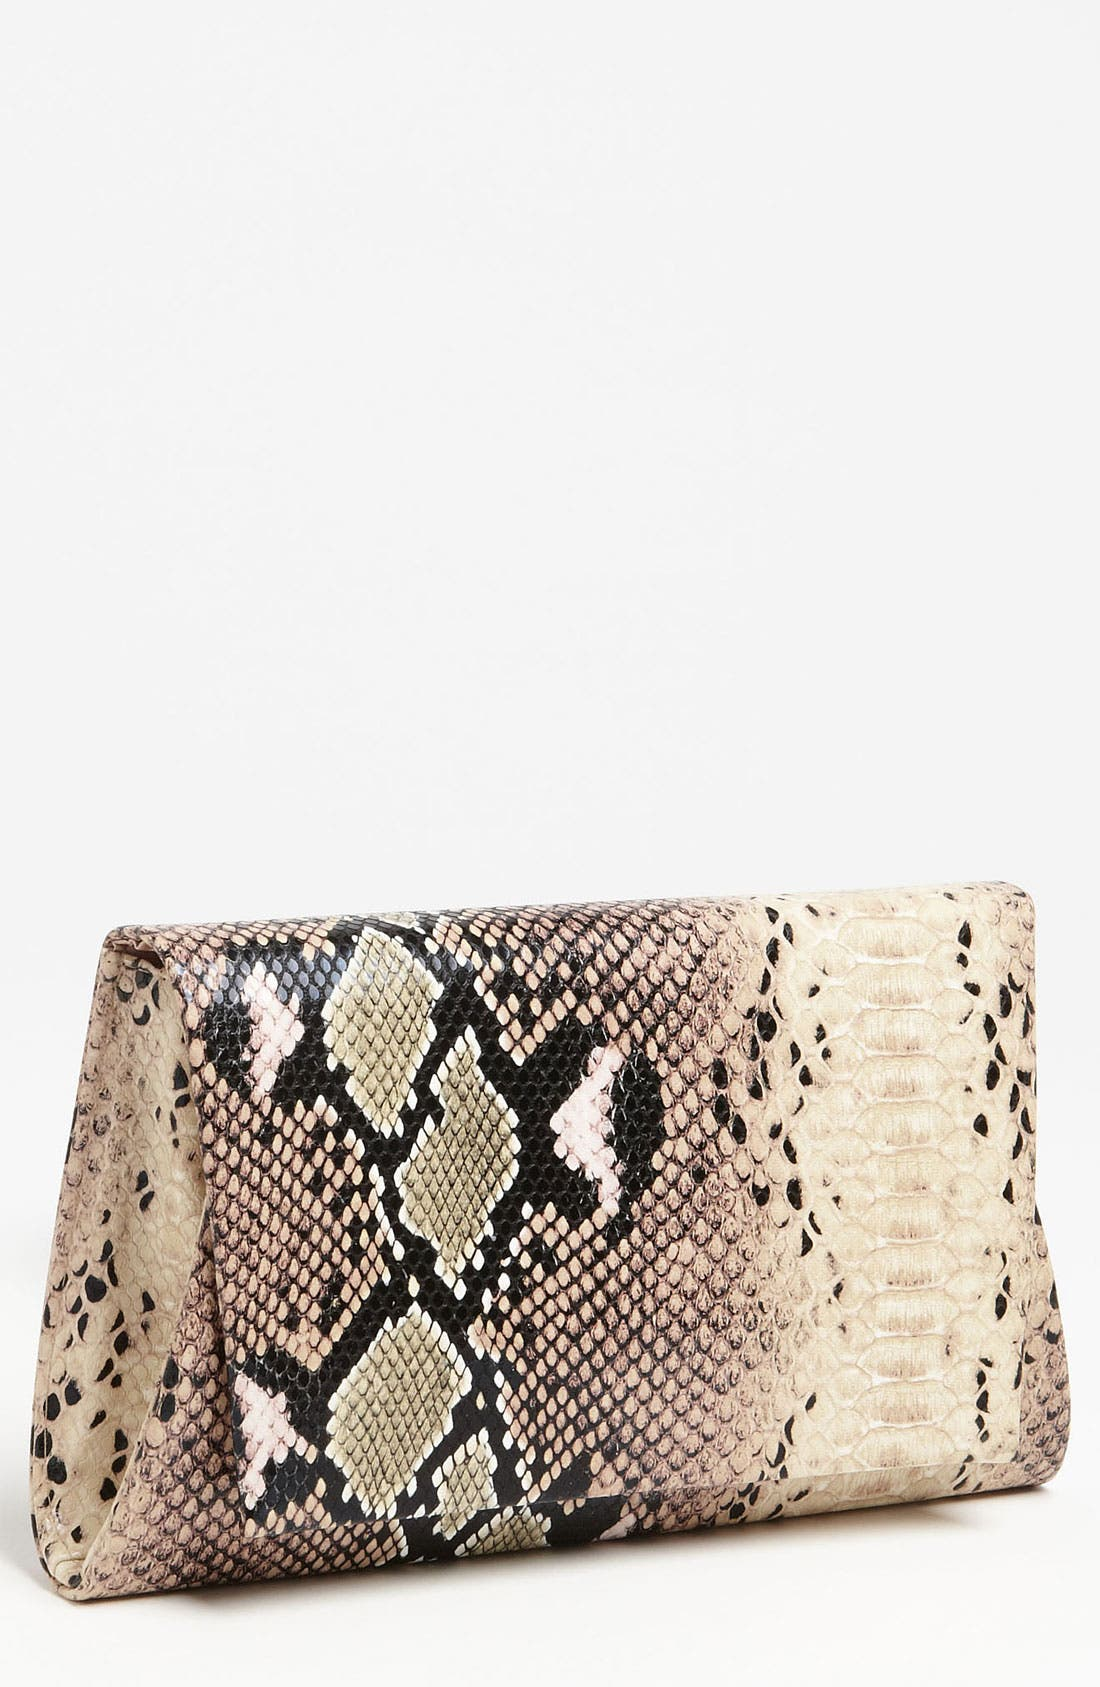 Natasha Couture Foldover Snake Embossed Clutch,                             Main thumbnail 1, color,                             274